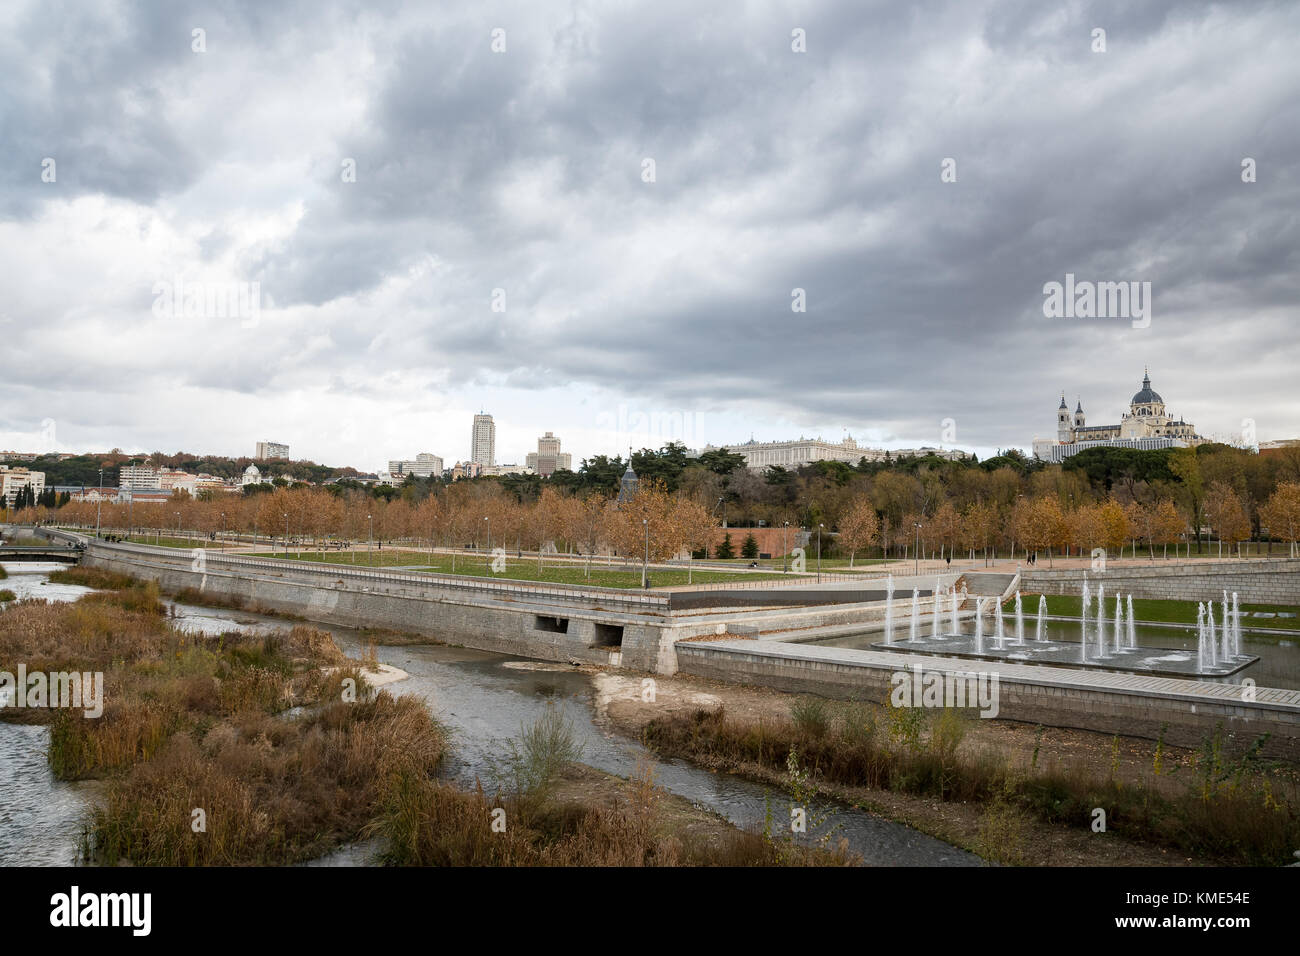 Skyline of Madrid (Spain) viewed from Segovia Bridge, including Manzanares river and Madrid Rio park. Stock Photo